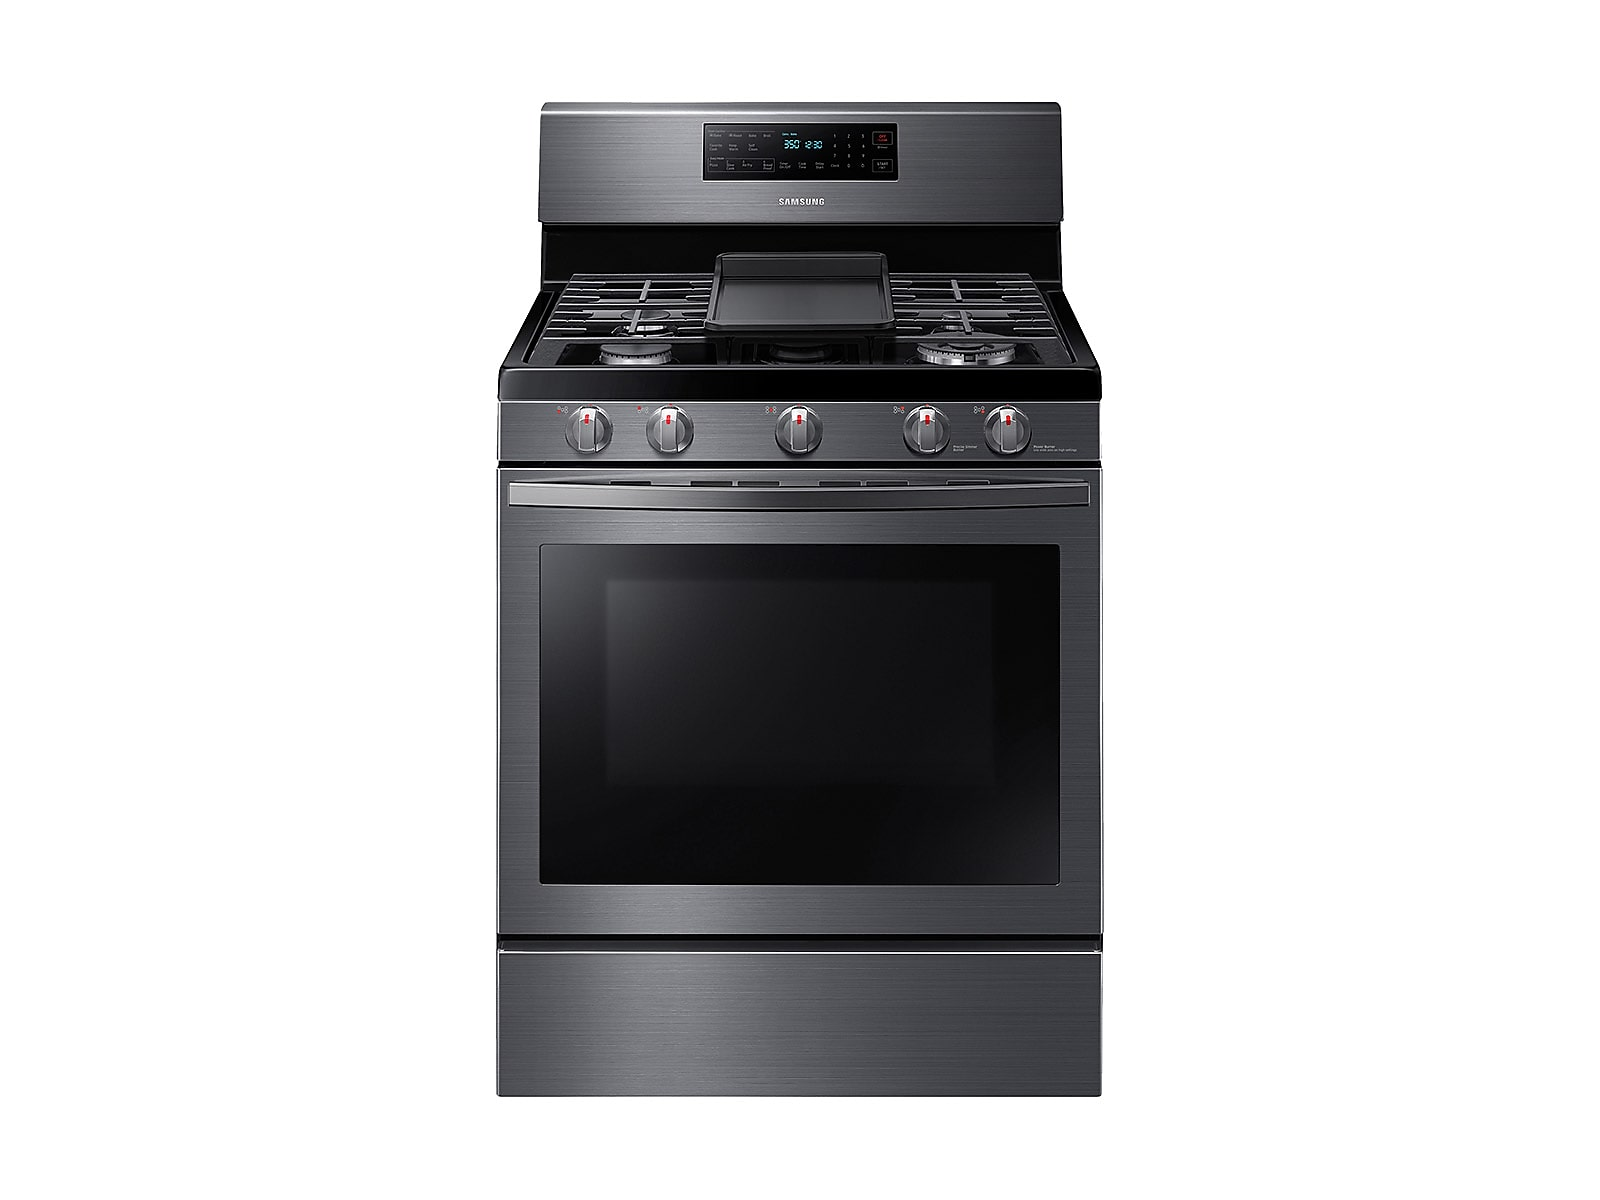 Samsung 5.8 cu. ft. Freestanding Gas Range with Air Fry and Convection in Black Stainless Steel(NX58T7511SG/AA)